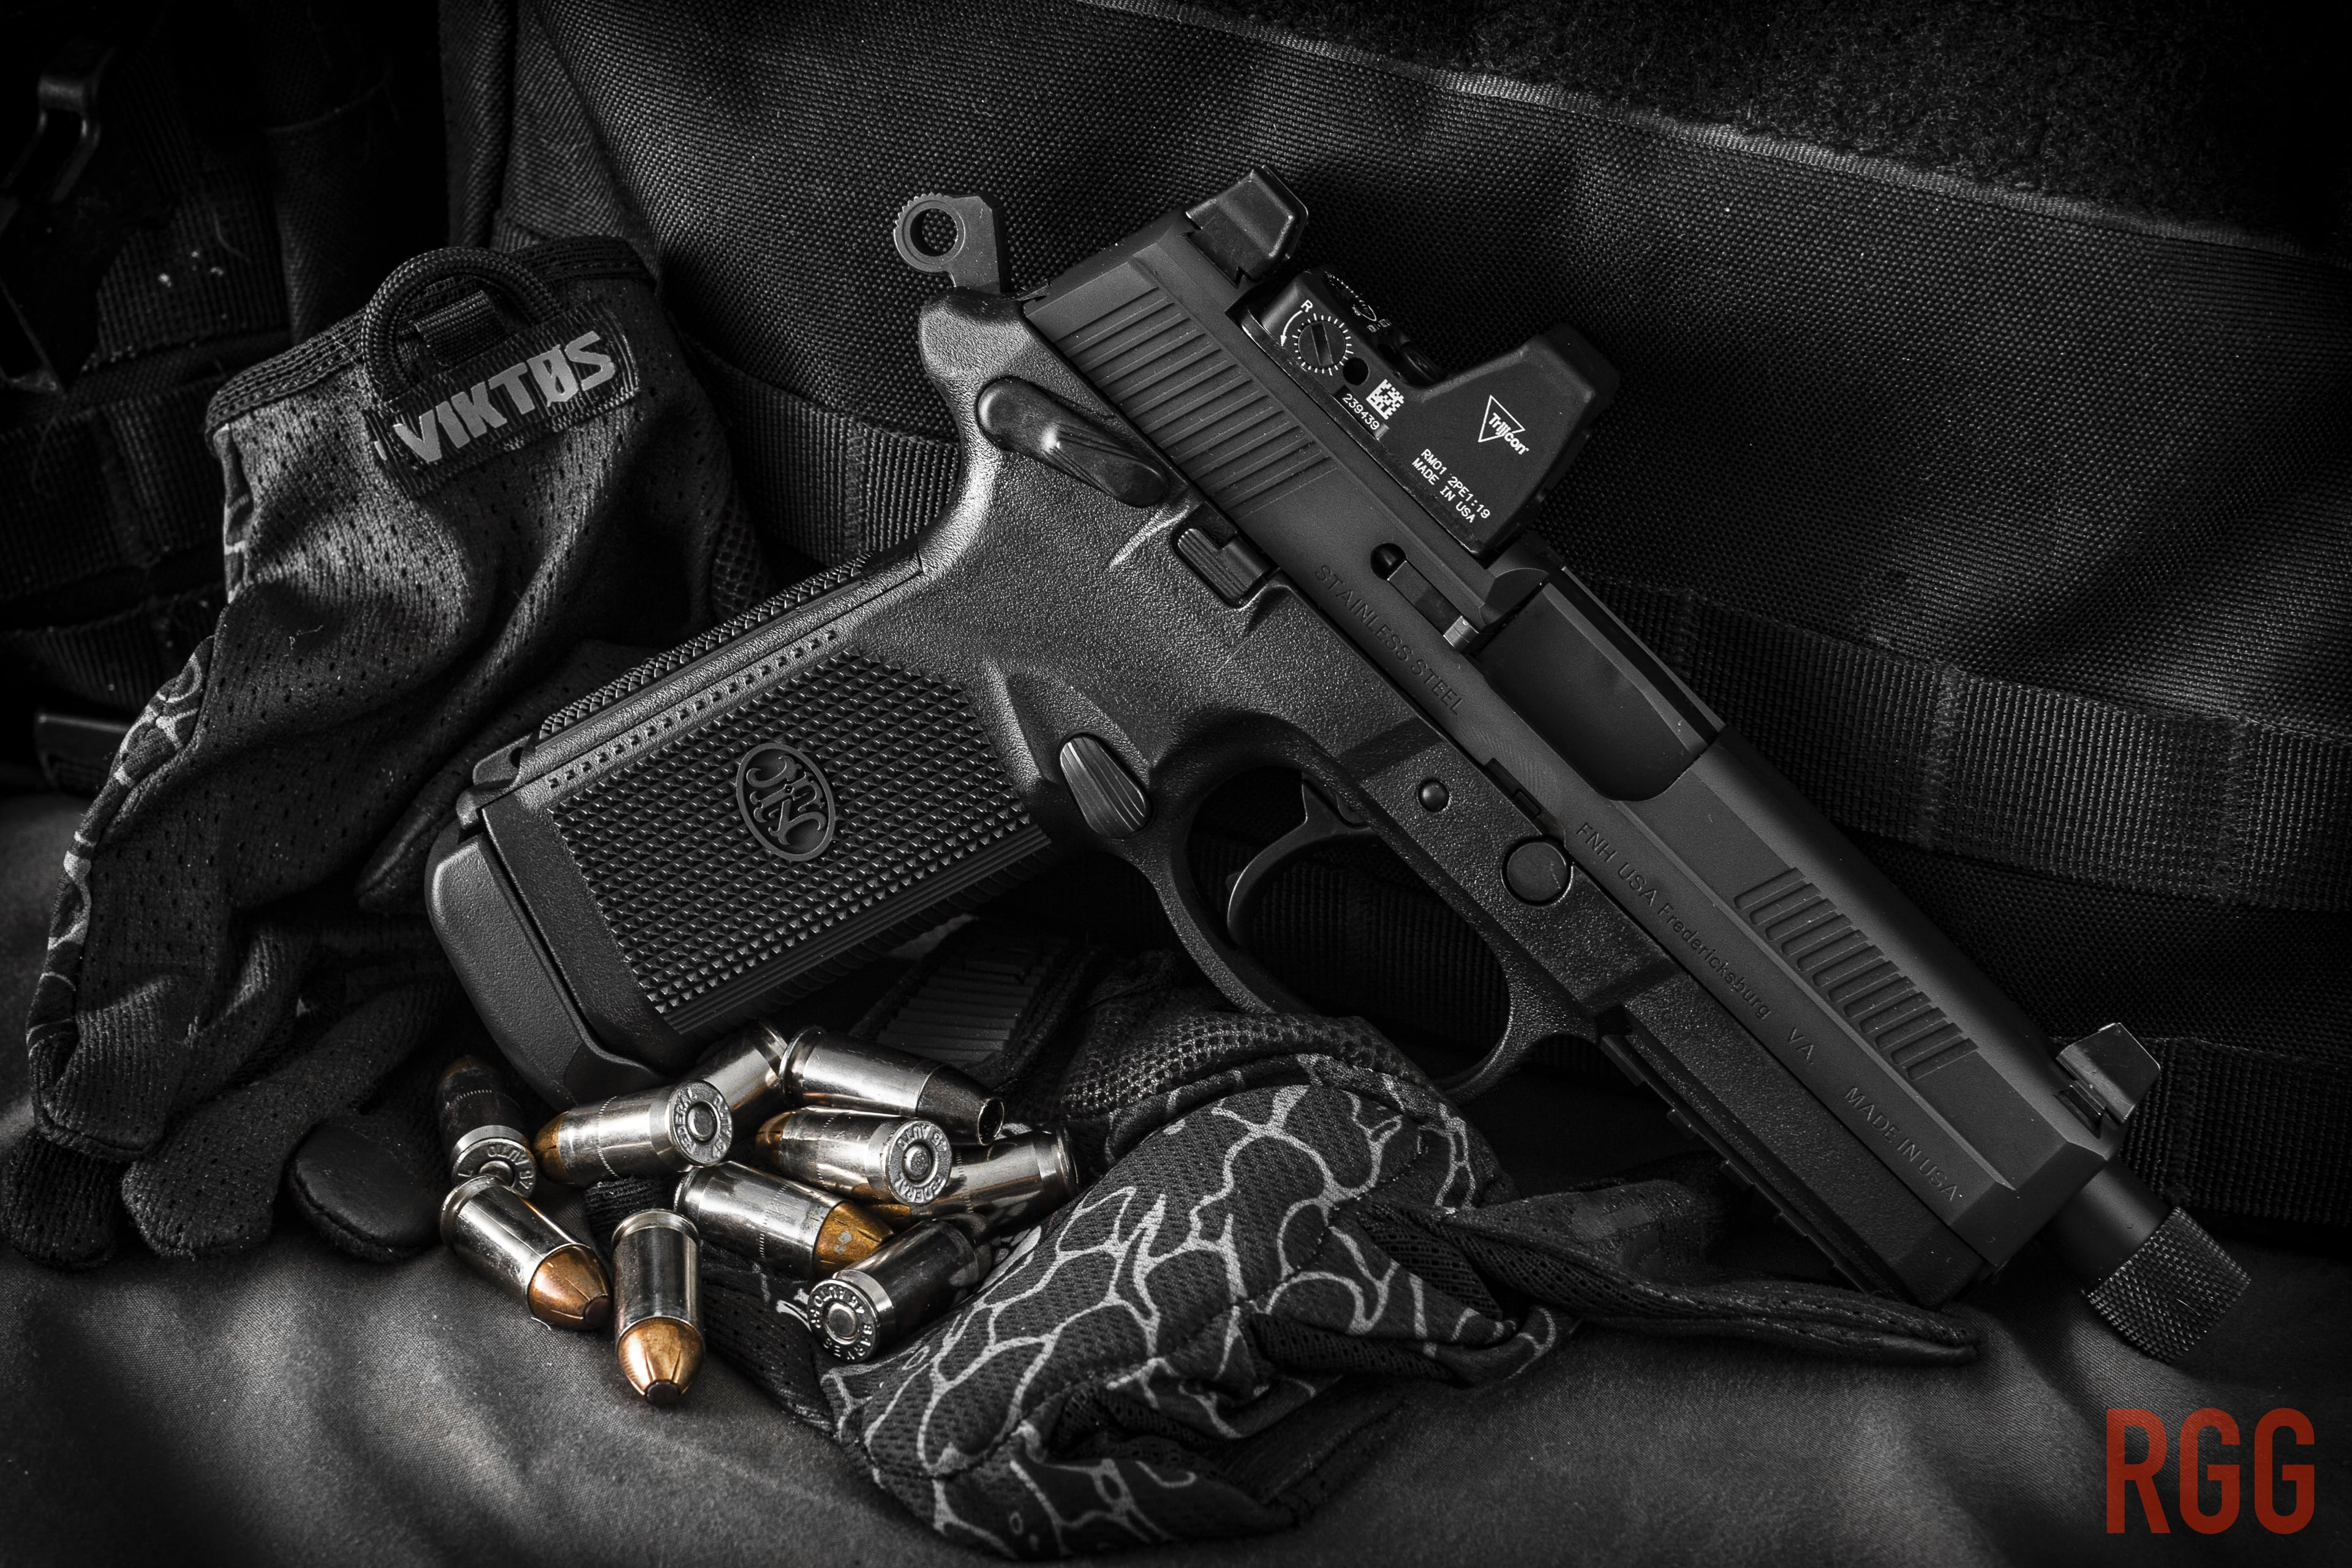 FN America FNX-45 .45 ACP pistol. Doesn't have much to do with this guest post but it's a cool photo I took.